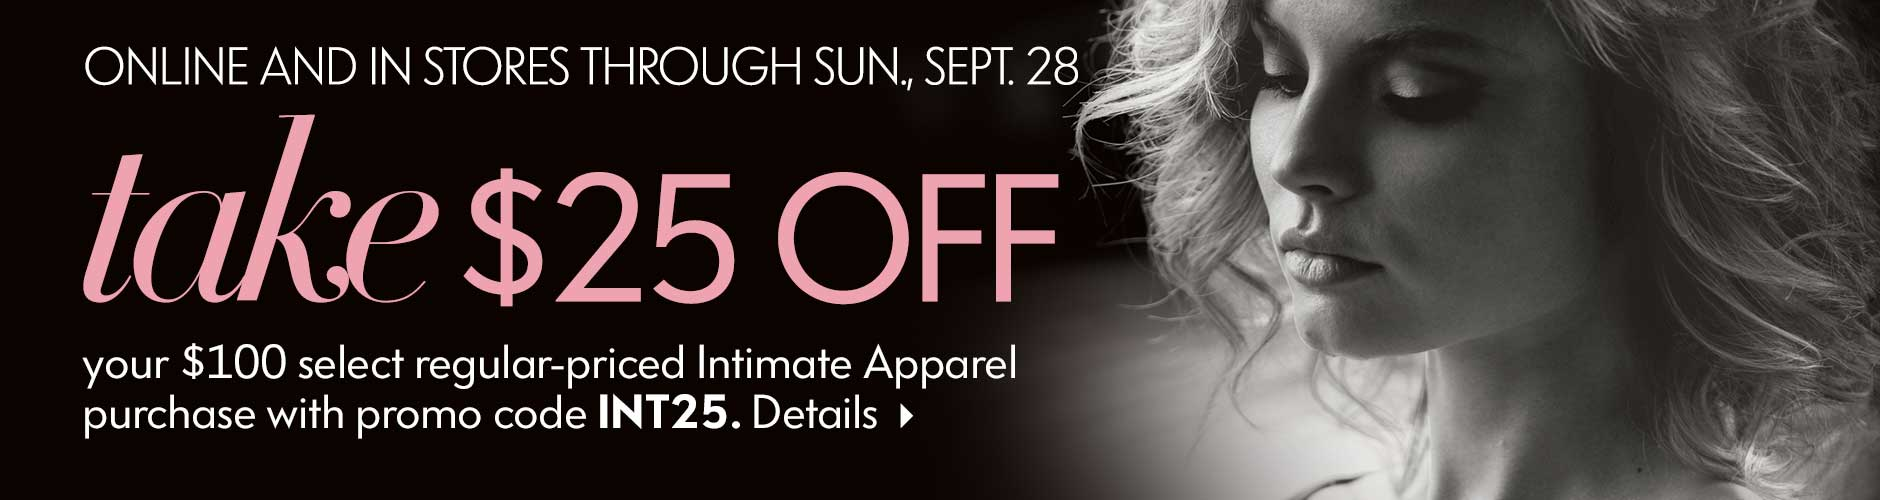 Take $25 off with Intimate Apparel purchase!